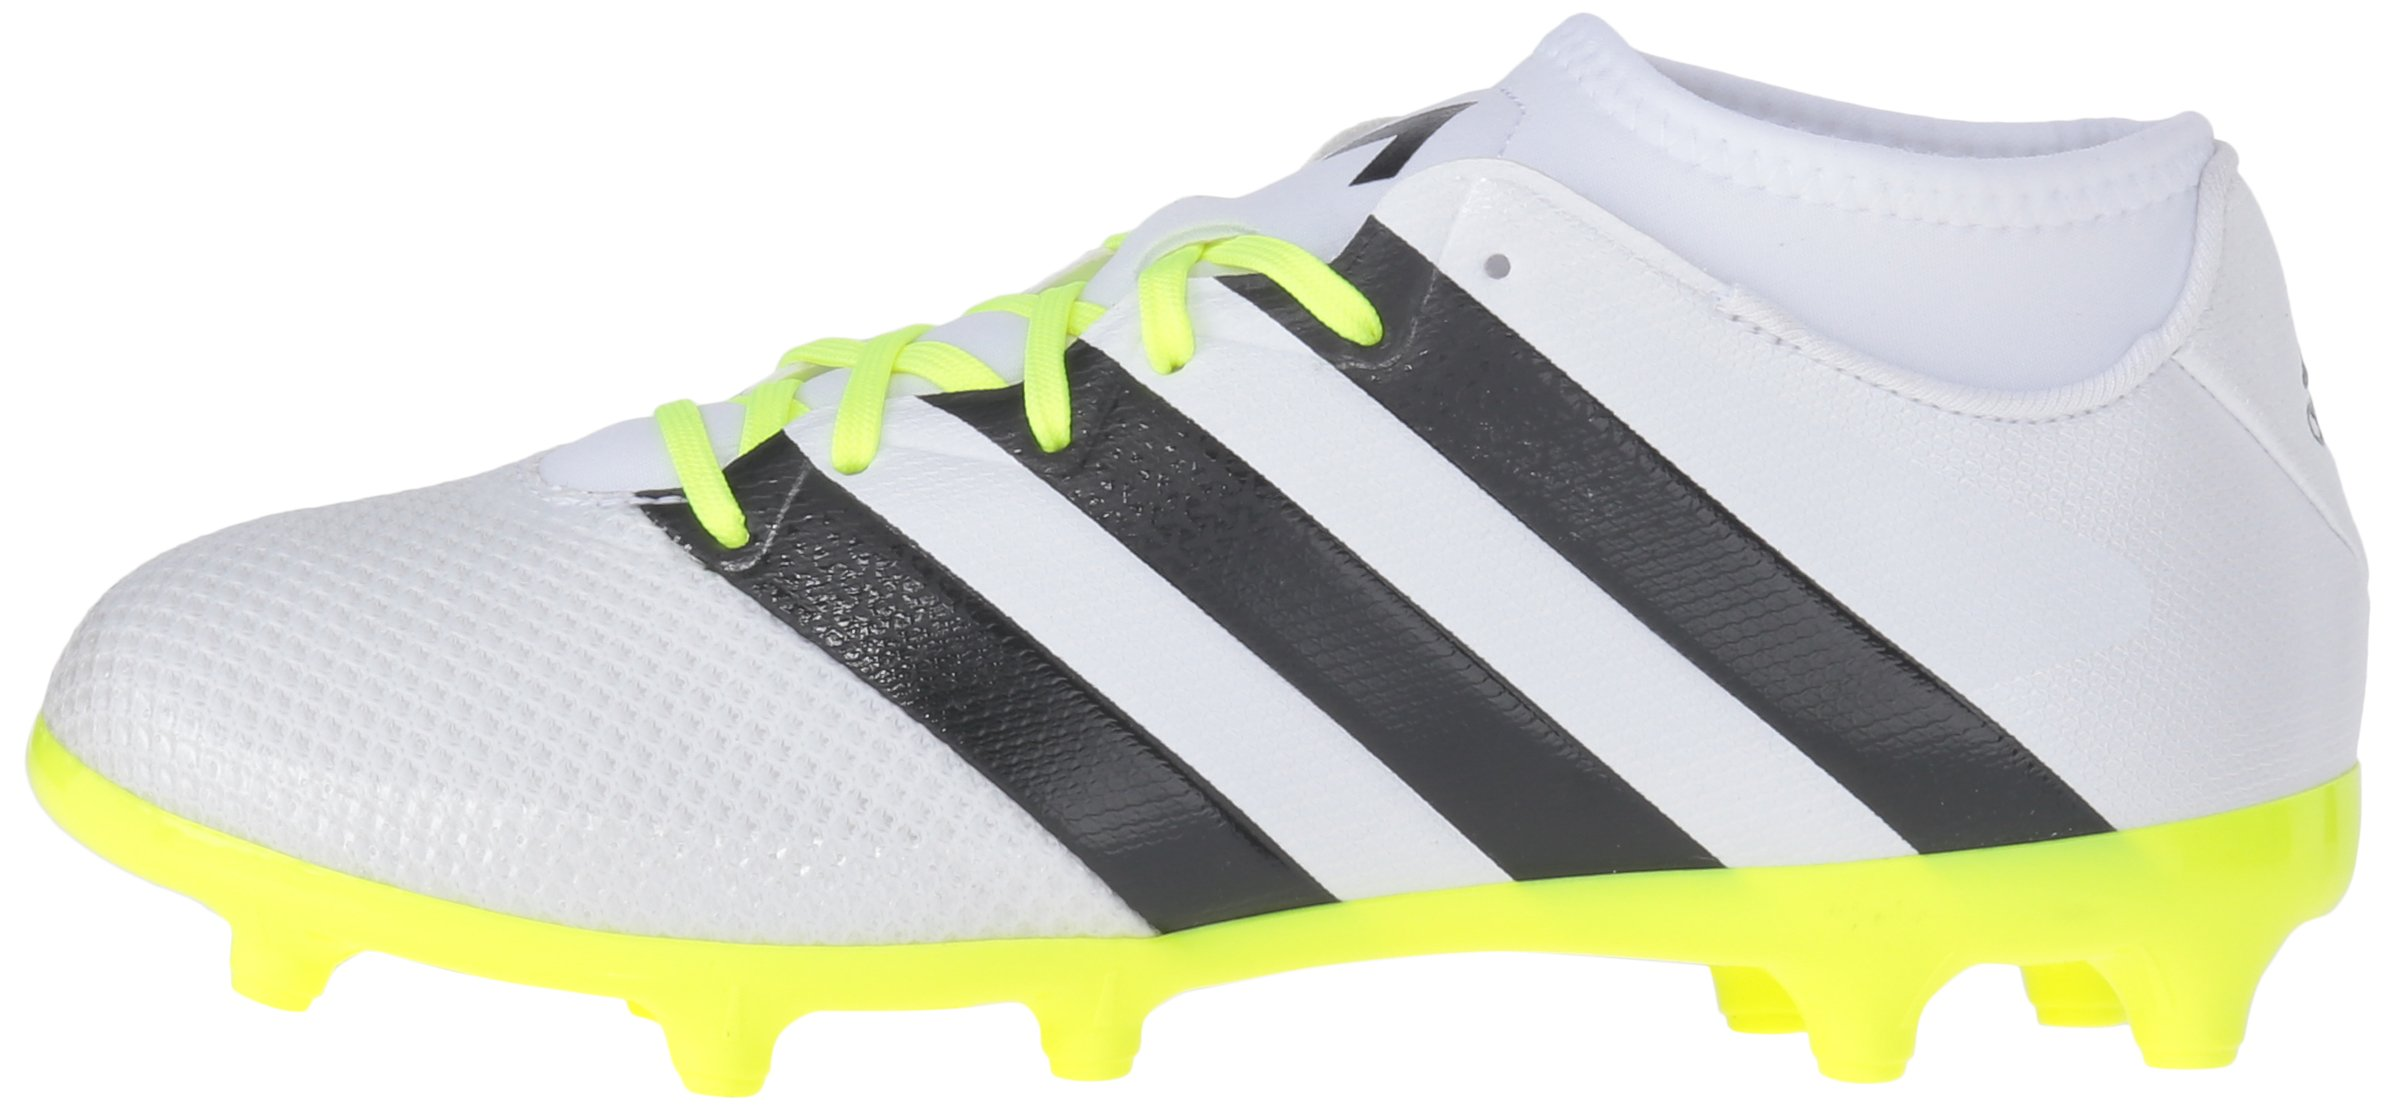 adidas Women's Ace 16.3 Primemesh FG/AG W Soccer Shoe, White/Black/Electricity, 9 M US by adidas (Image #5)